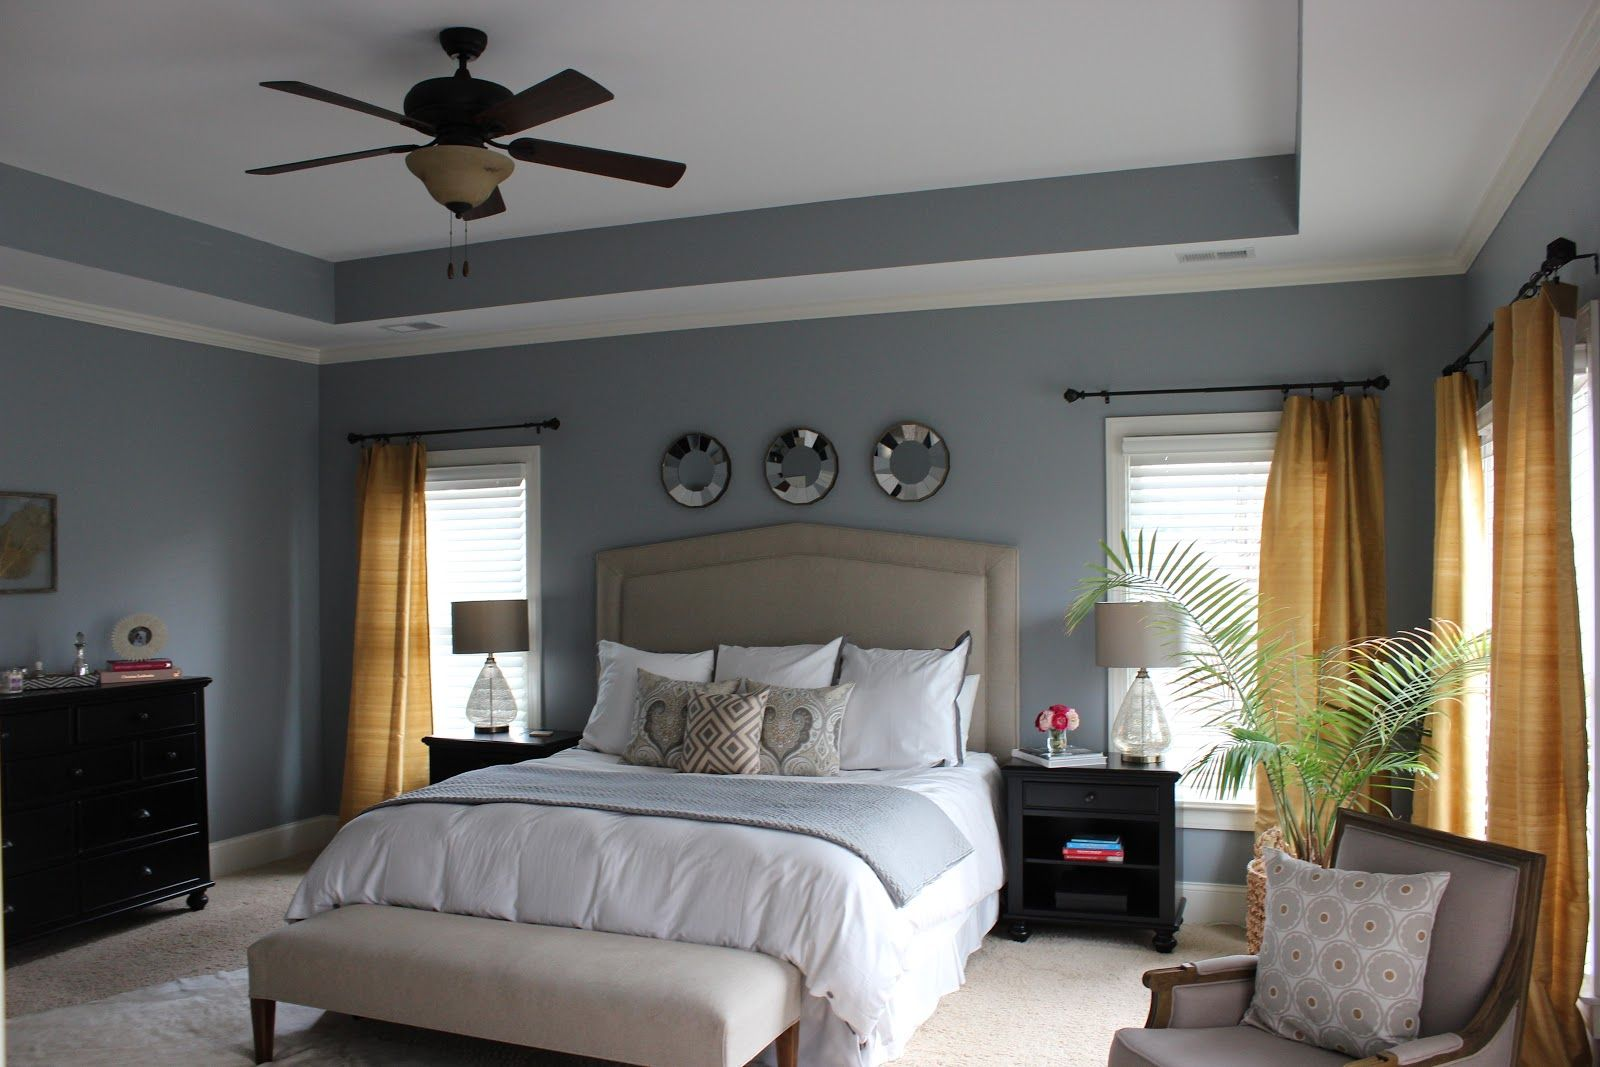 benjamin moore gull wing grey walls great master bedroom color - Gray Color Schemes For Bedrooms